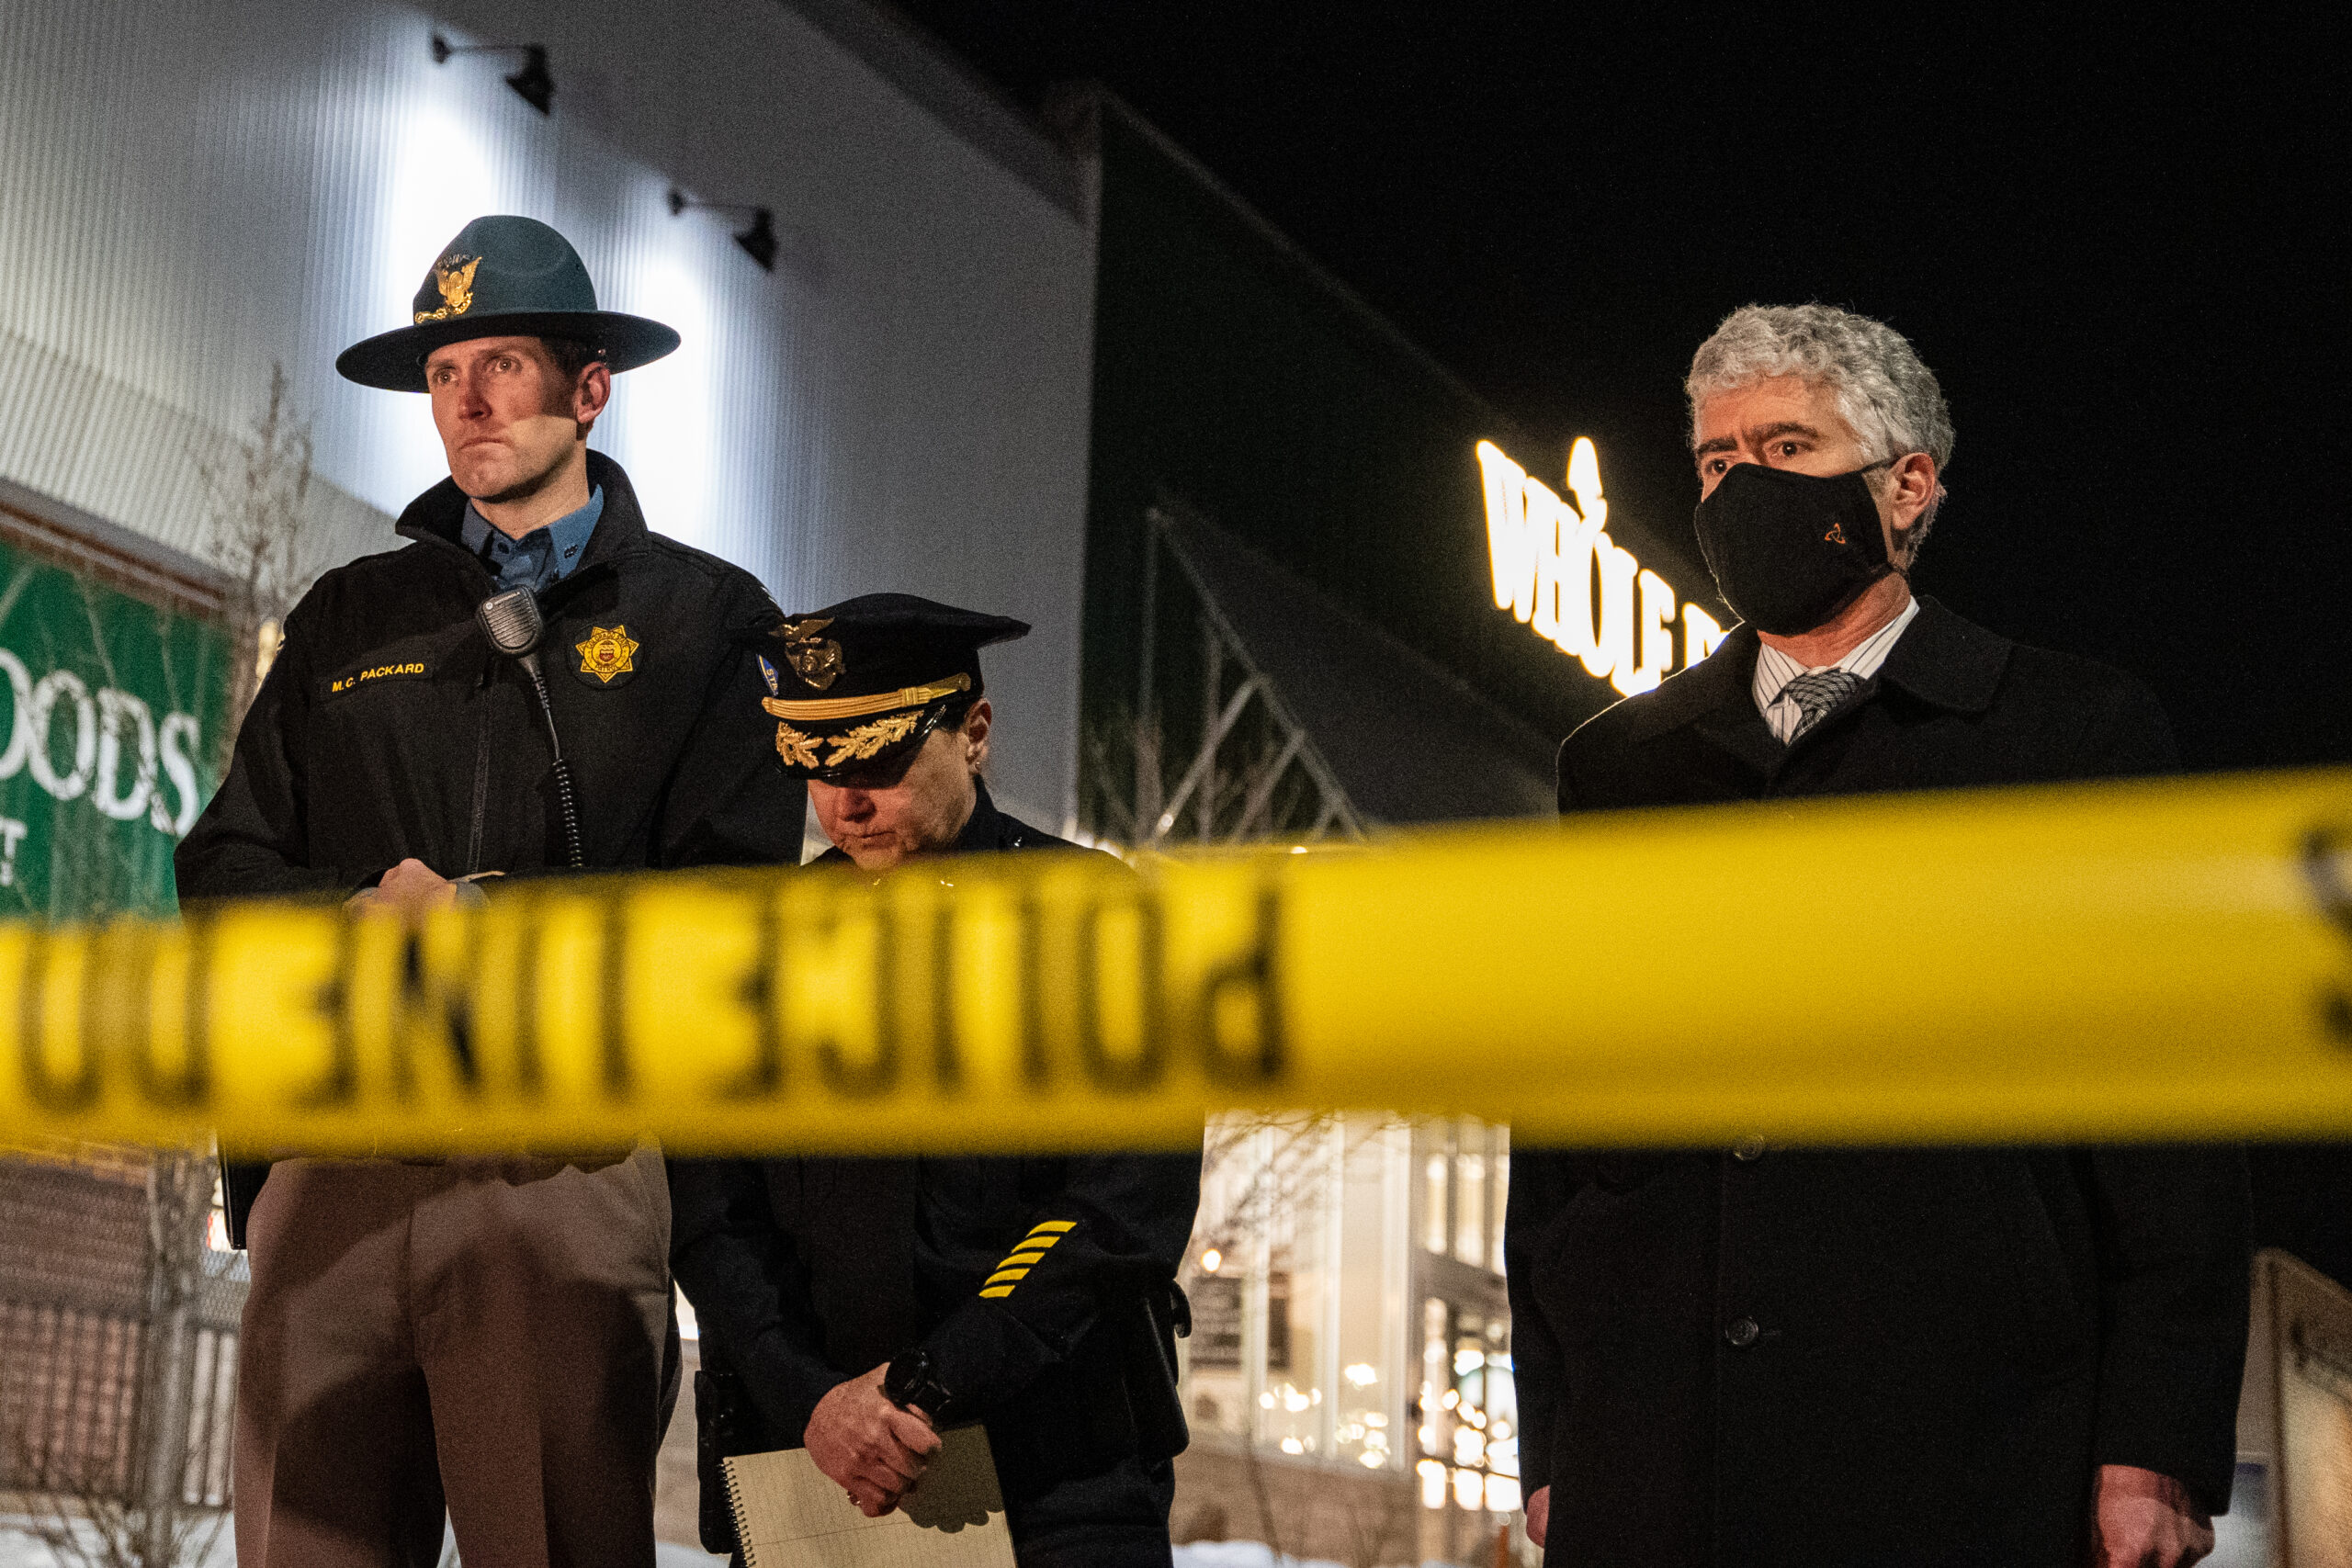 Colorado State Patrol Chief Matthew Packard, Boulder Police Chief Maris Herold and acting U.S. Attorney for Colorado Matthew Kirsch speak to reporters at a press conference hours after the March 22, 2021 shooting that killed 10 people at King Soopers in Boulder, Colo.